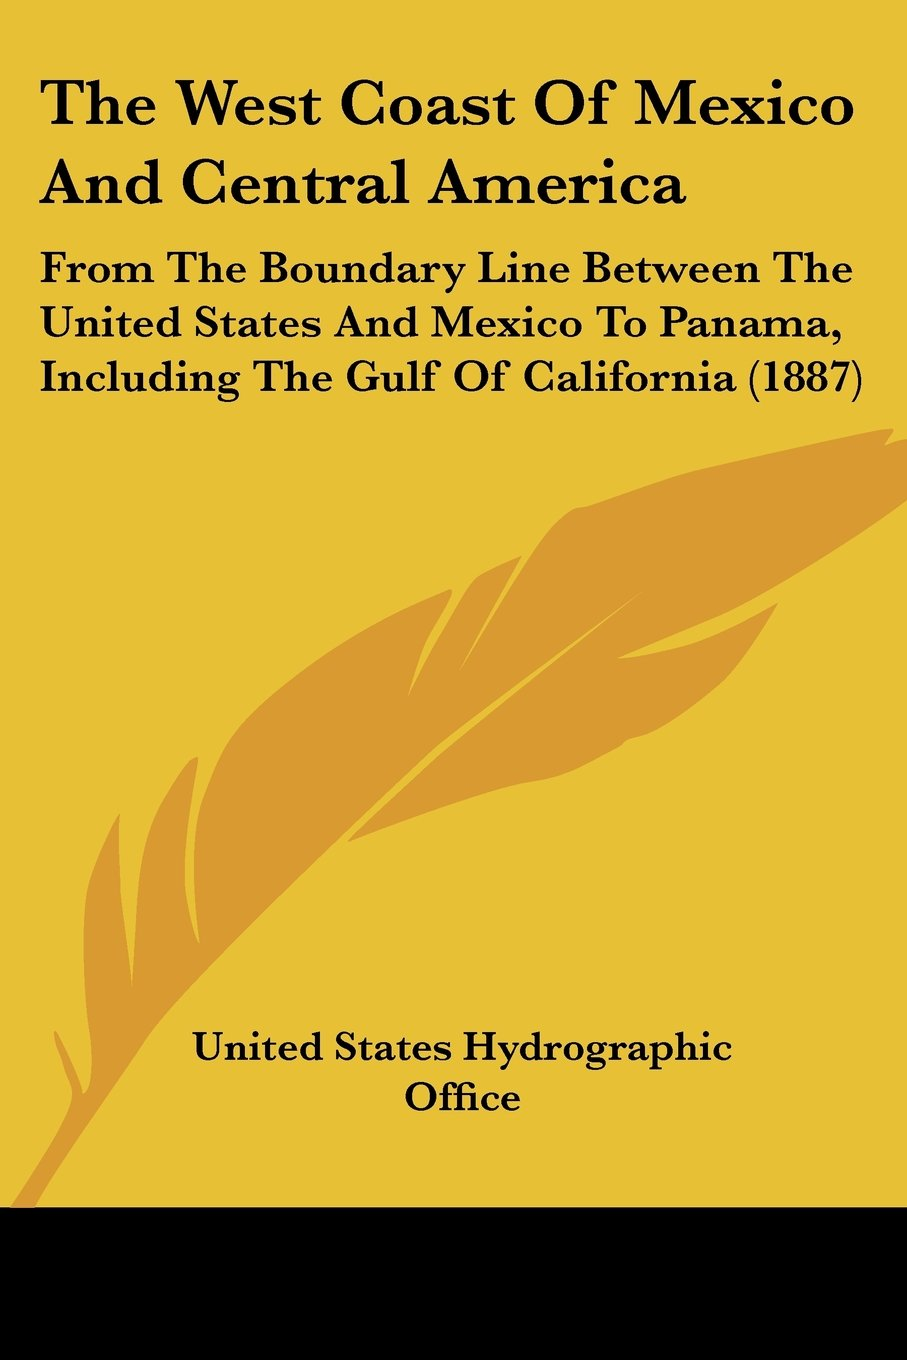 Download The West Coast Of Mexico And Central America: From The Boundary Line Between The United States And Mexico To Panama, Including The Gulf Of California (1887) PDF